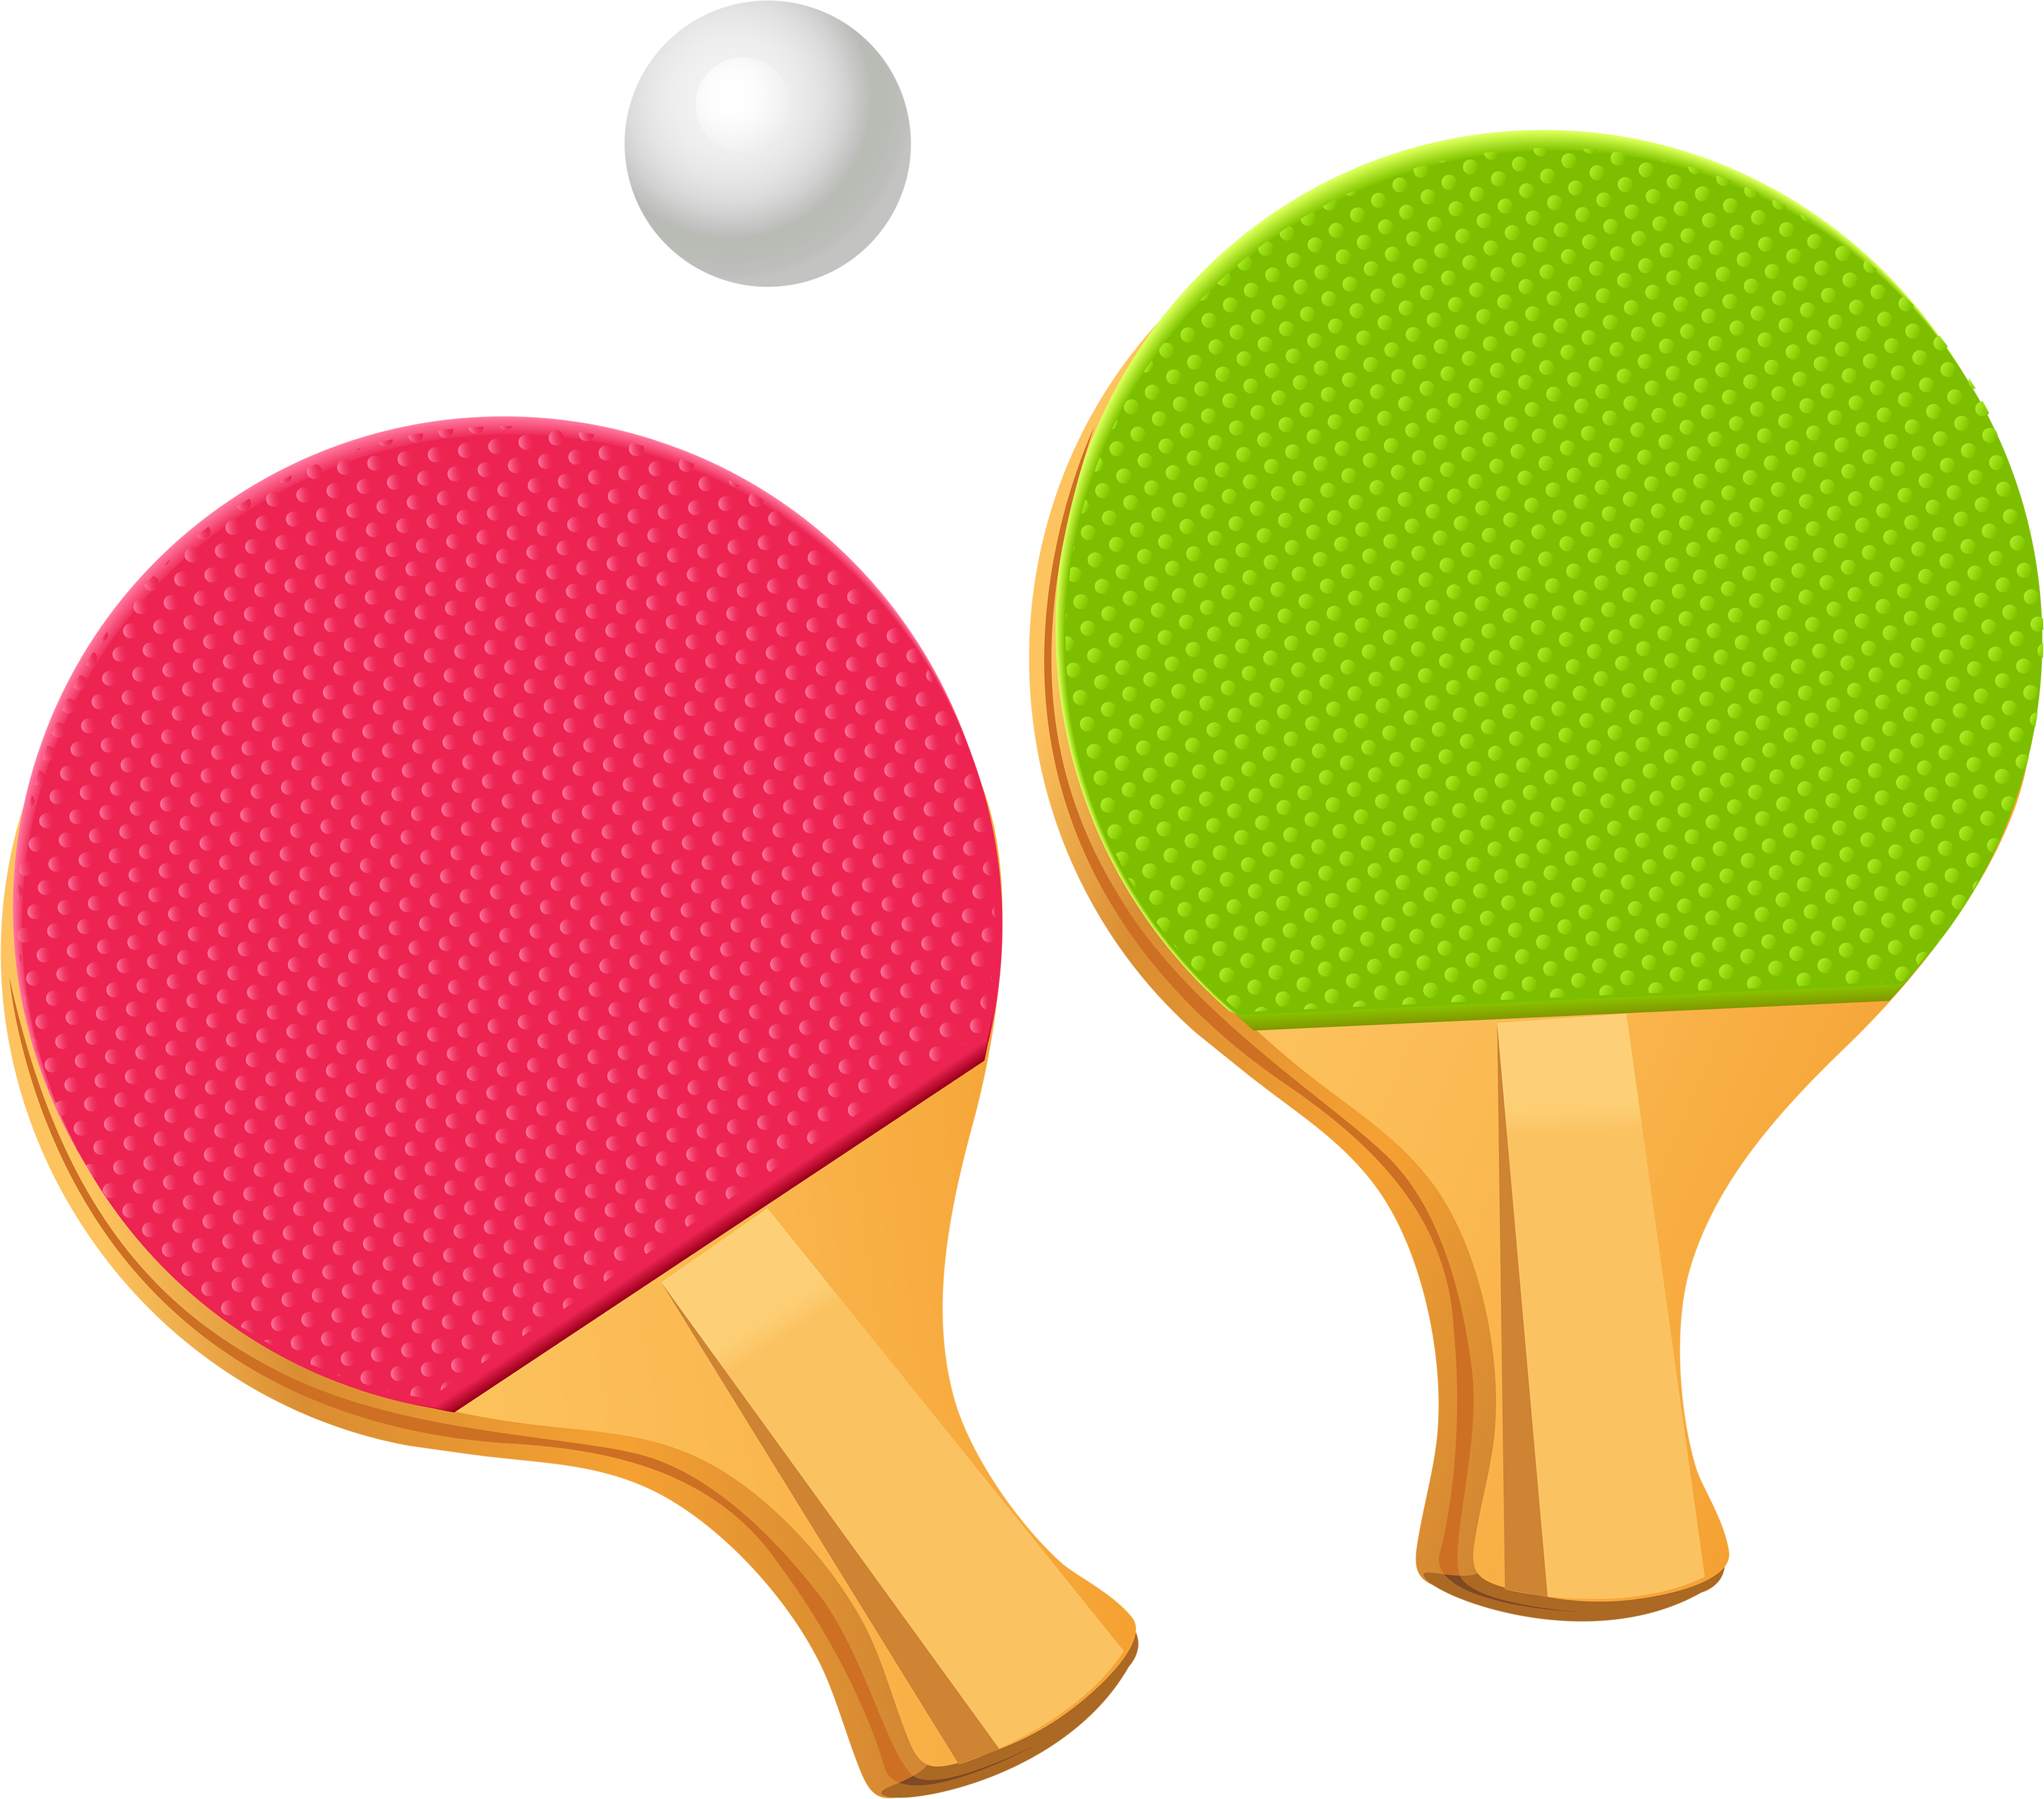 Detective clipart transparent background. Ping pong png images